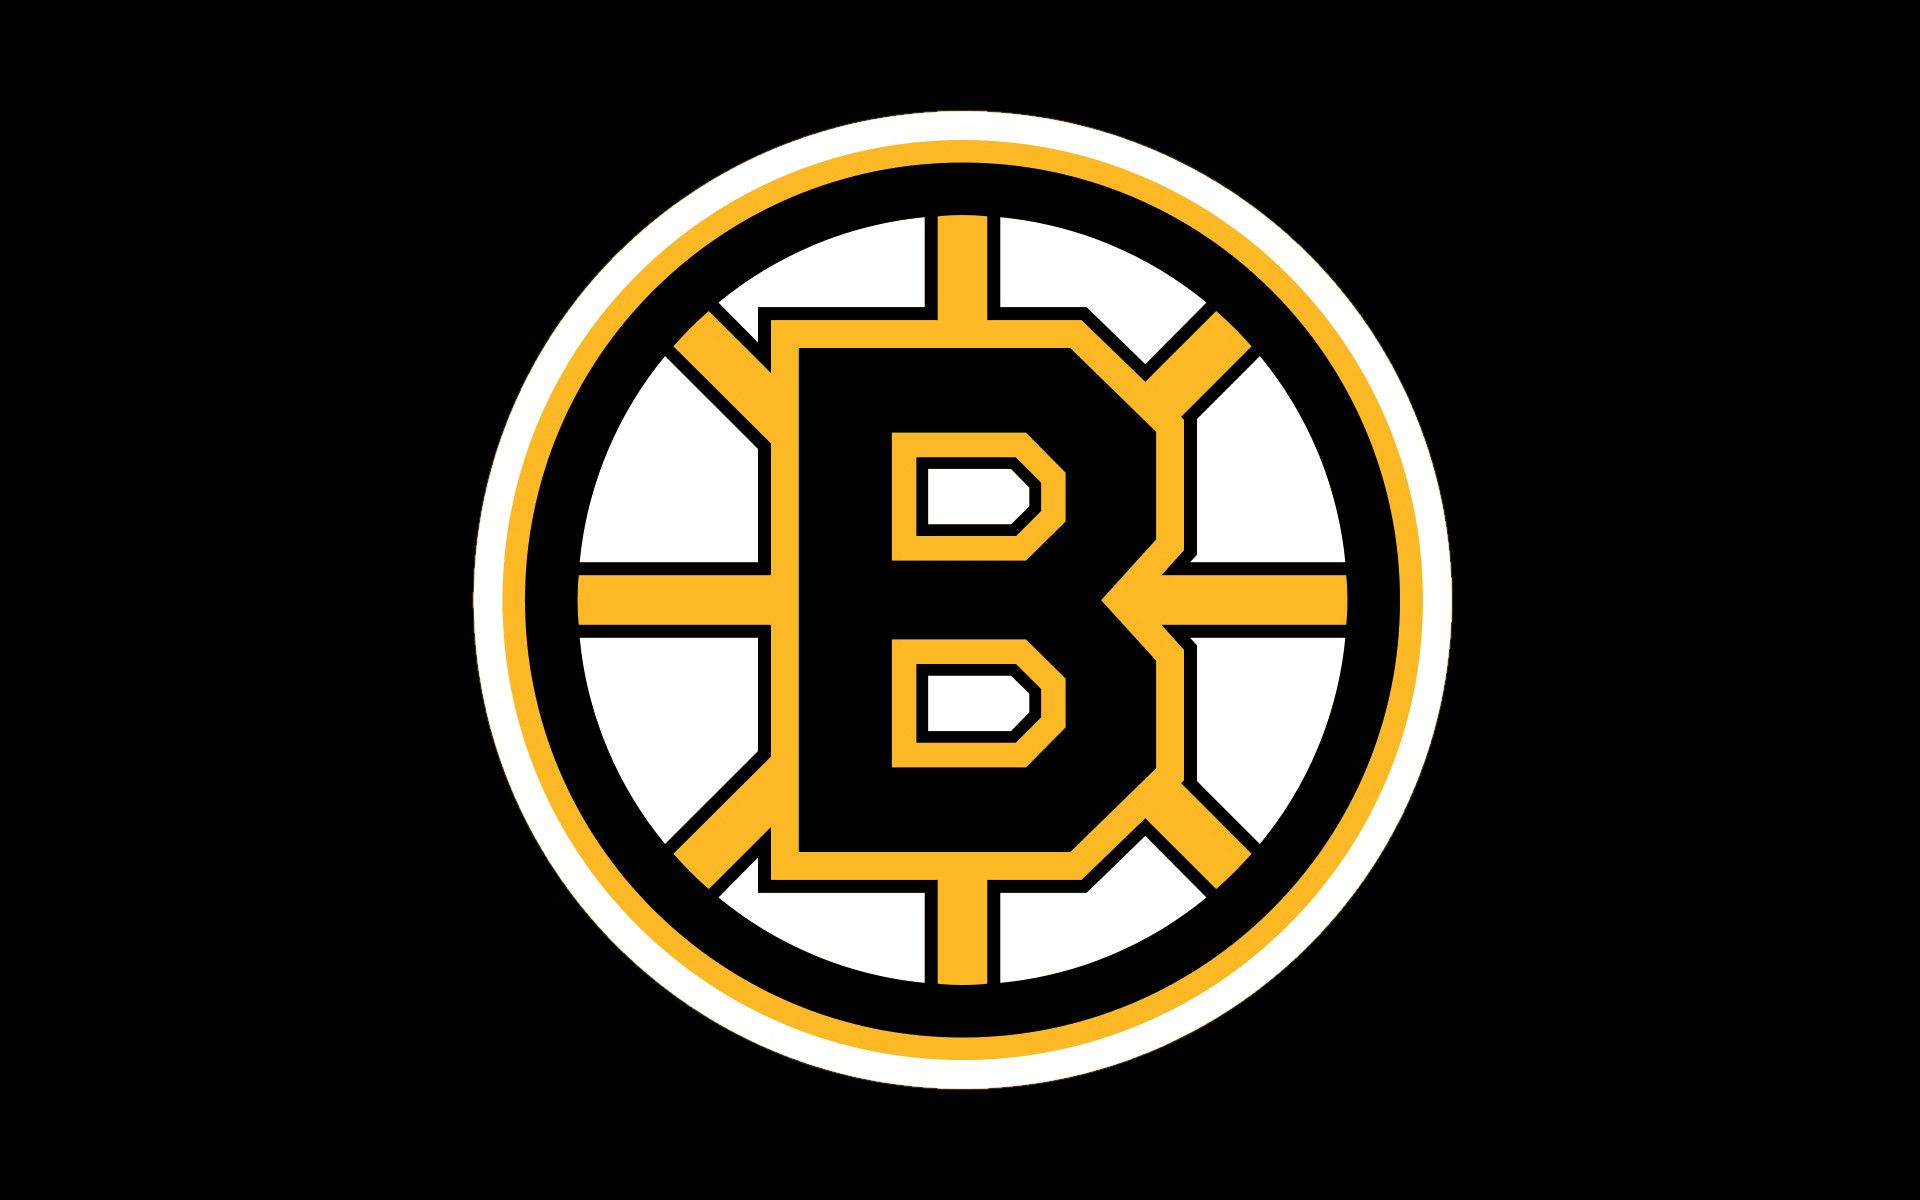 Boston Bruins (Photo: Wallpaper Cave)